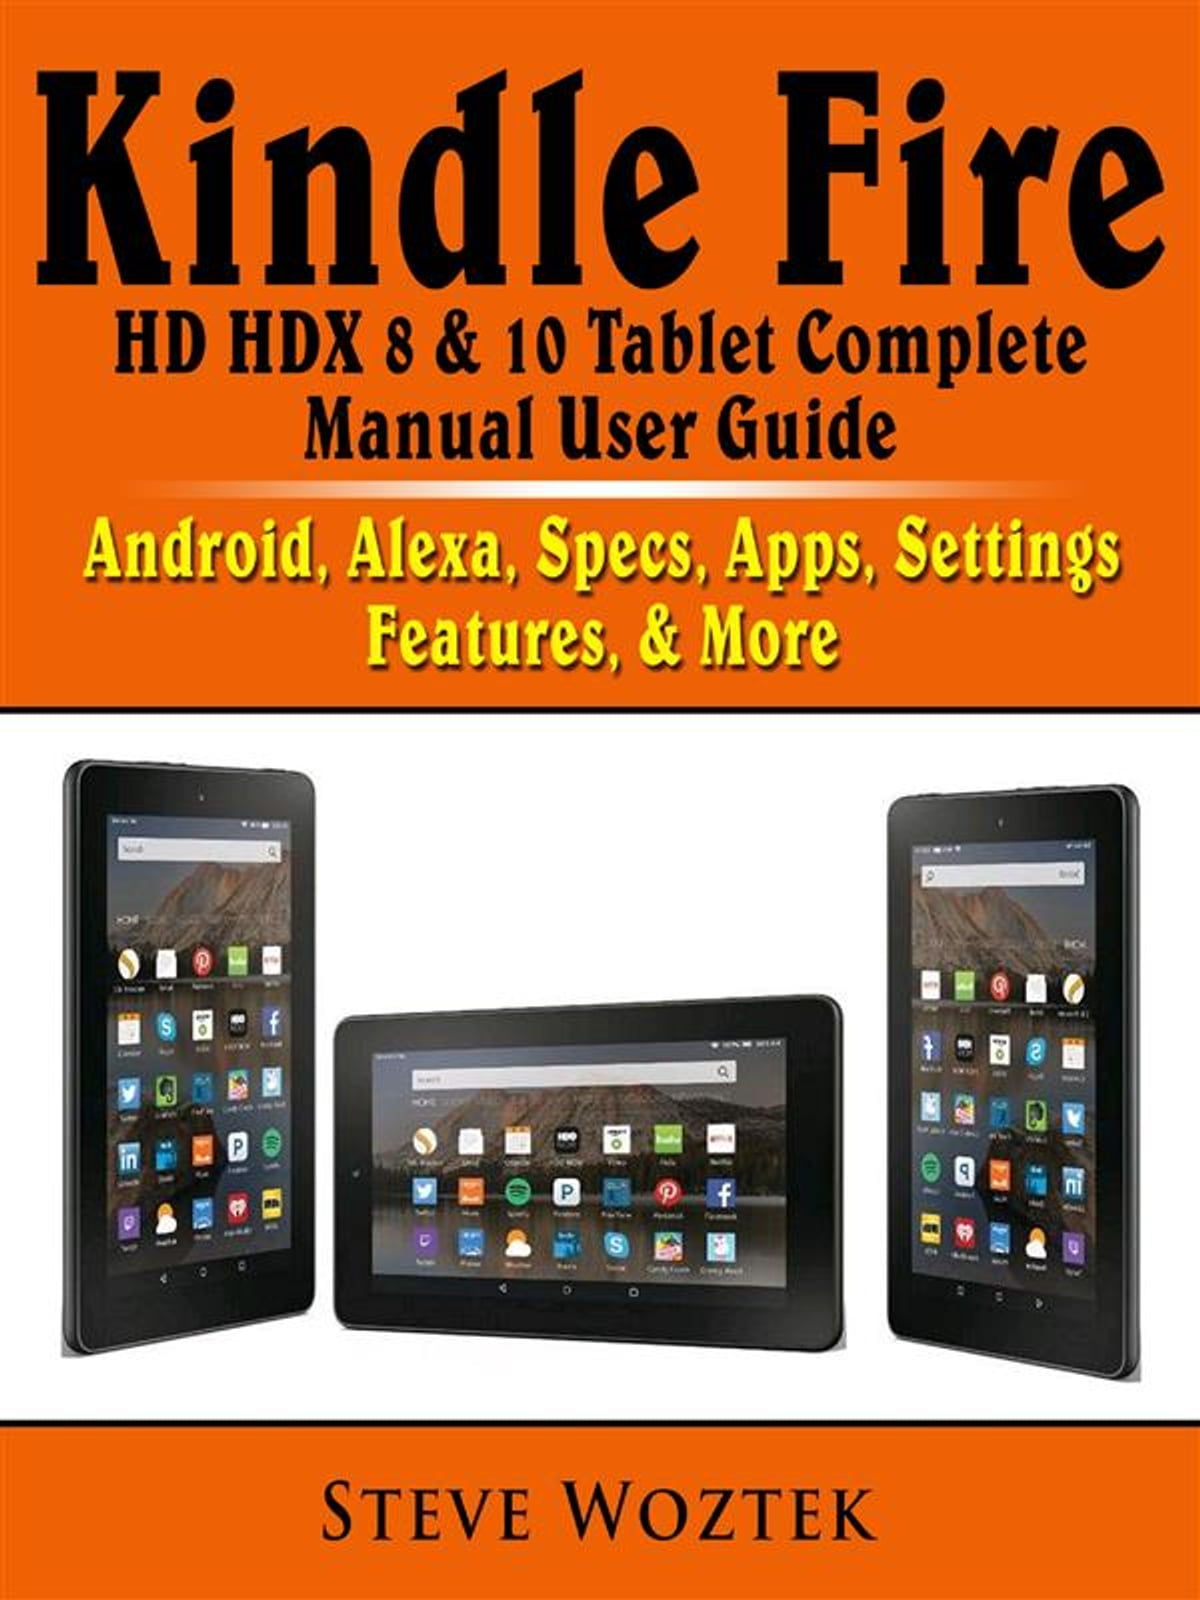 Kindle Fire HD HDX 8 & 10 Tablet Complete Manual User Guide: Android,  Alexa, Specs, Apps, Settings, Features, & More ebook by Steve Woztek -  Rakuten